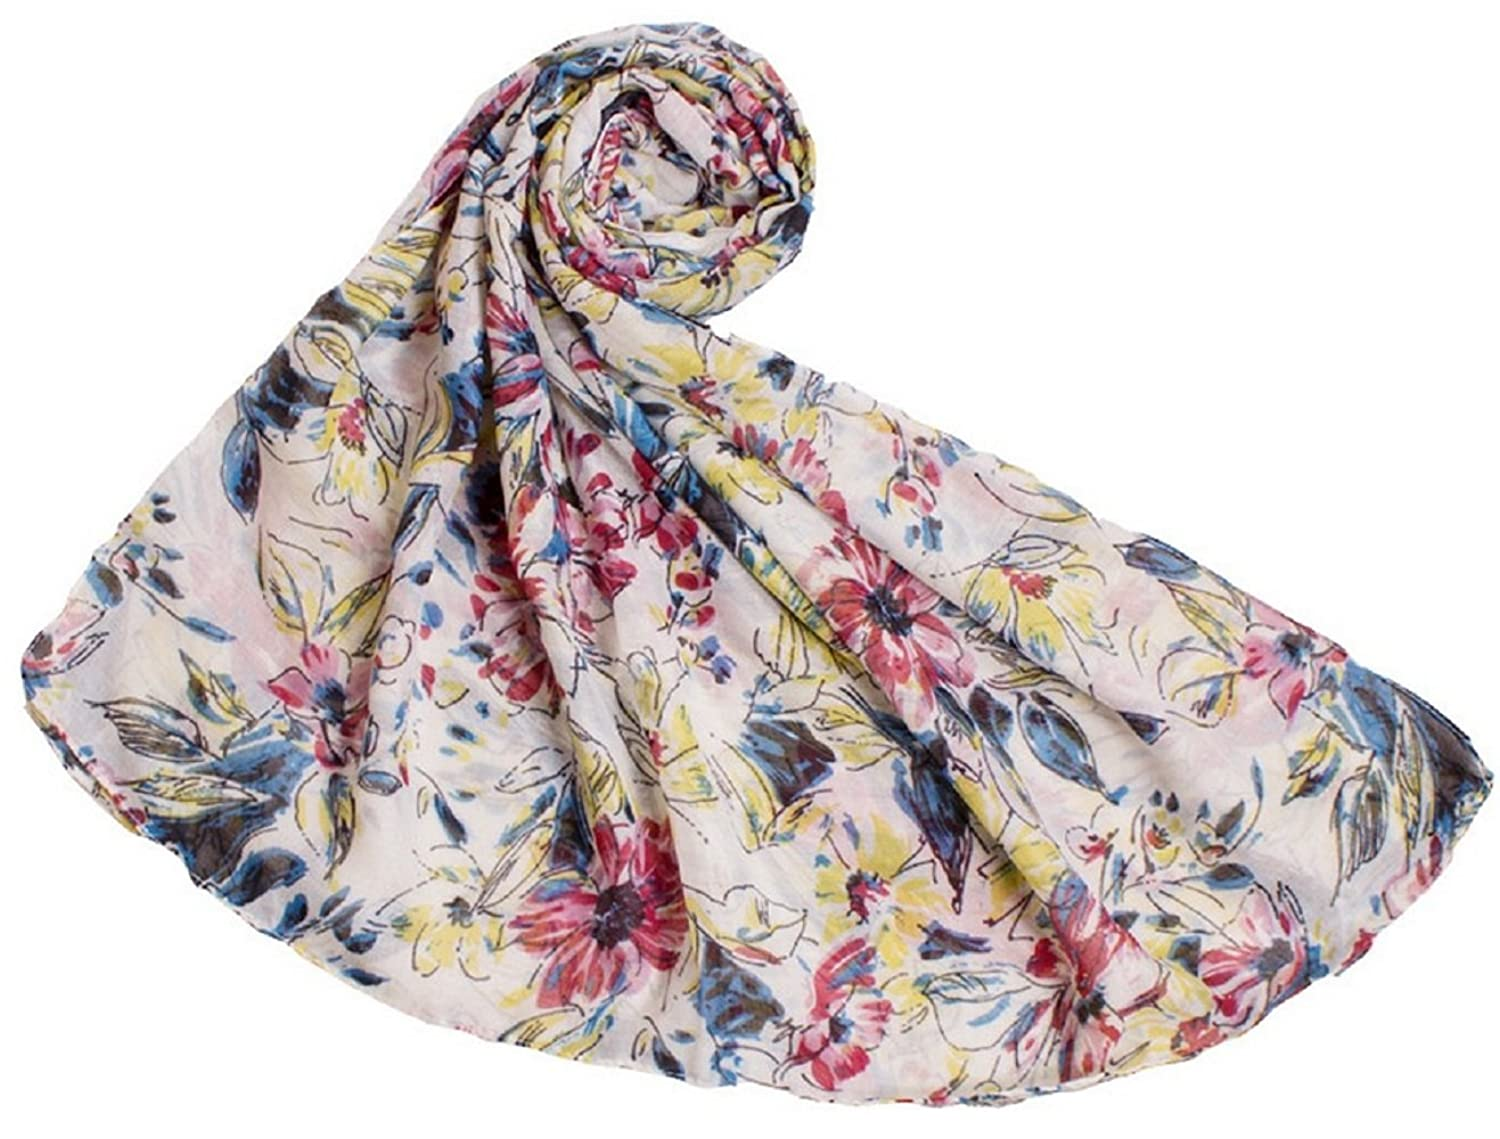 Bettyhome Fashion Girls Floral Pattern Voile Women's Large Beach Scarf Shawl Lightweight 5 Color